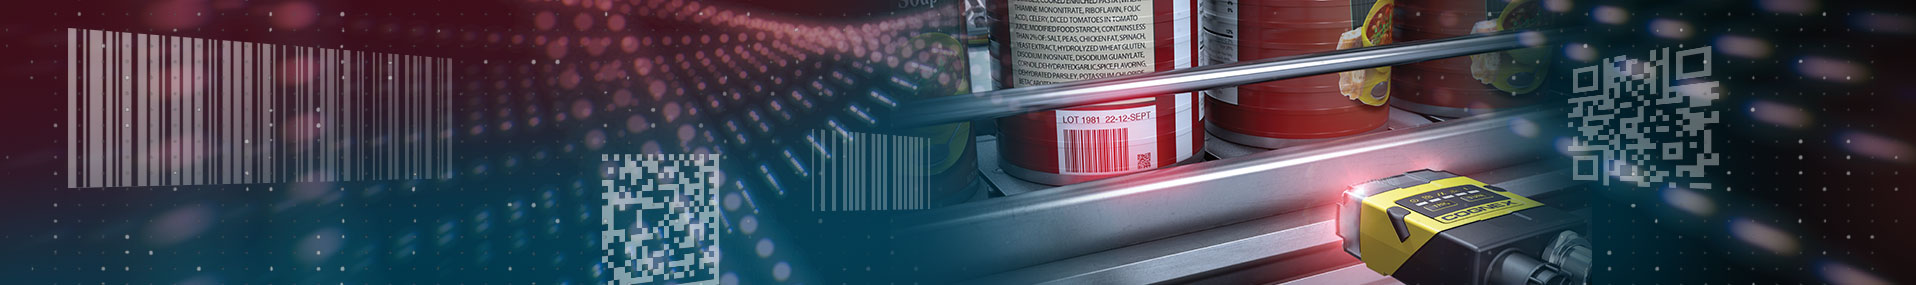 Intro to Barcode Reading